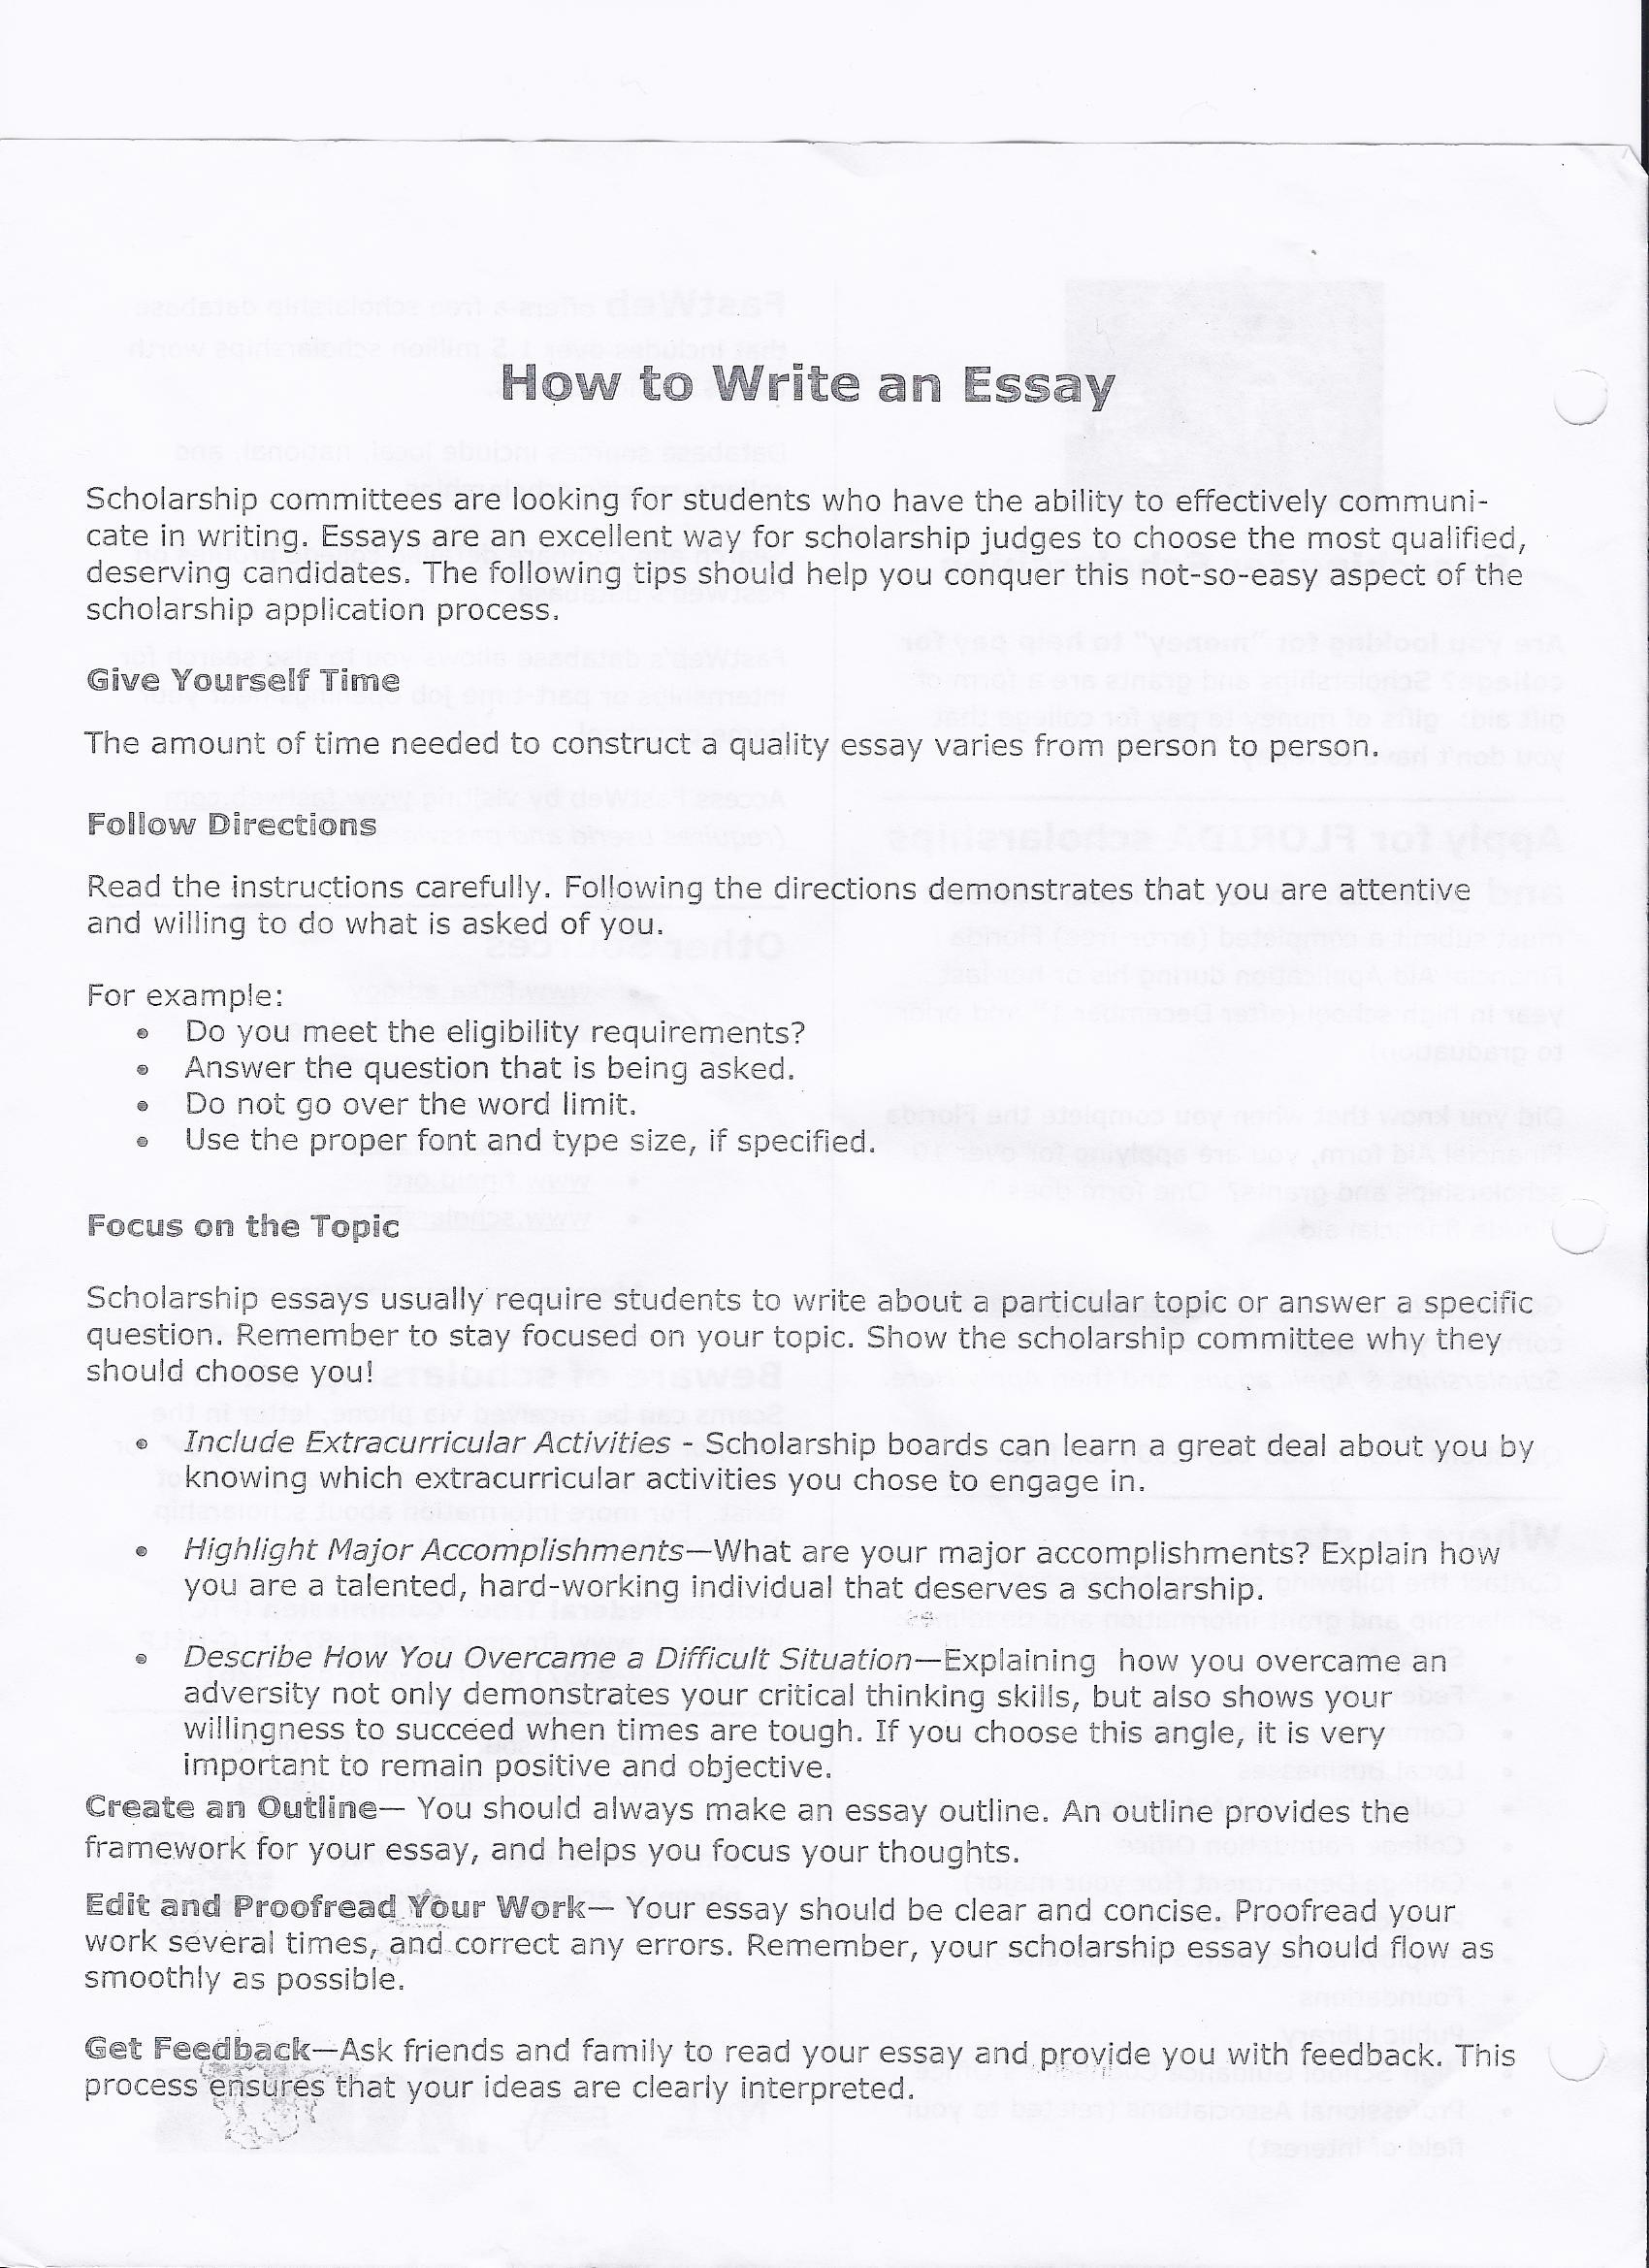 description of the beach essay essay on personality development  collage essay collage essay collage essay jonathon lay personal collage essaycollage essay buy key stage geography descriptive